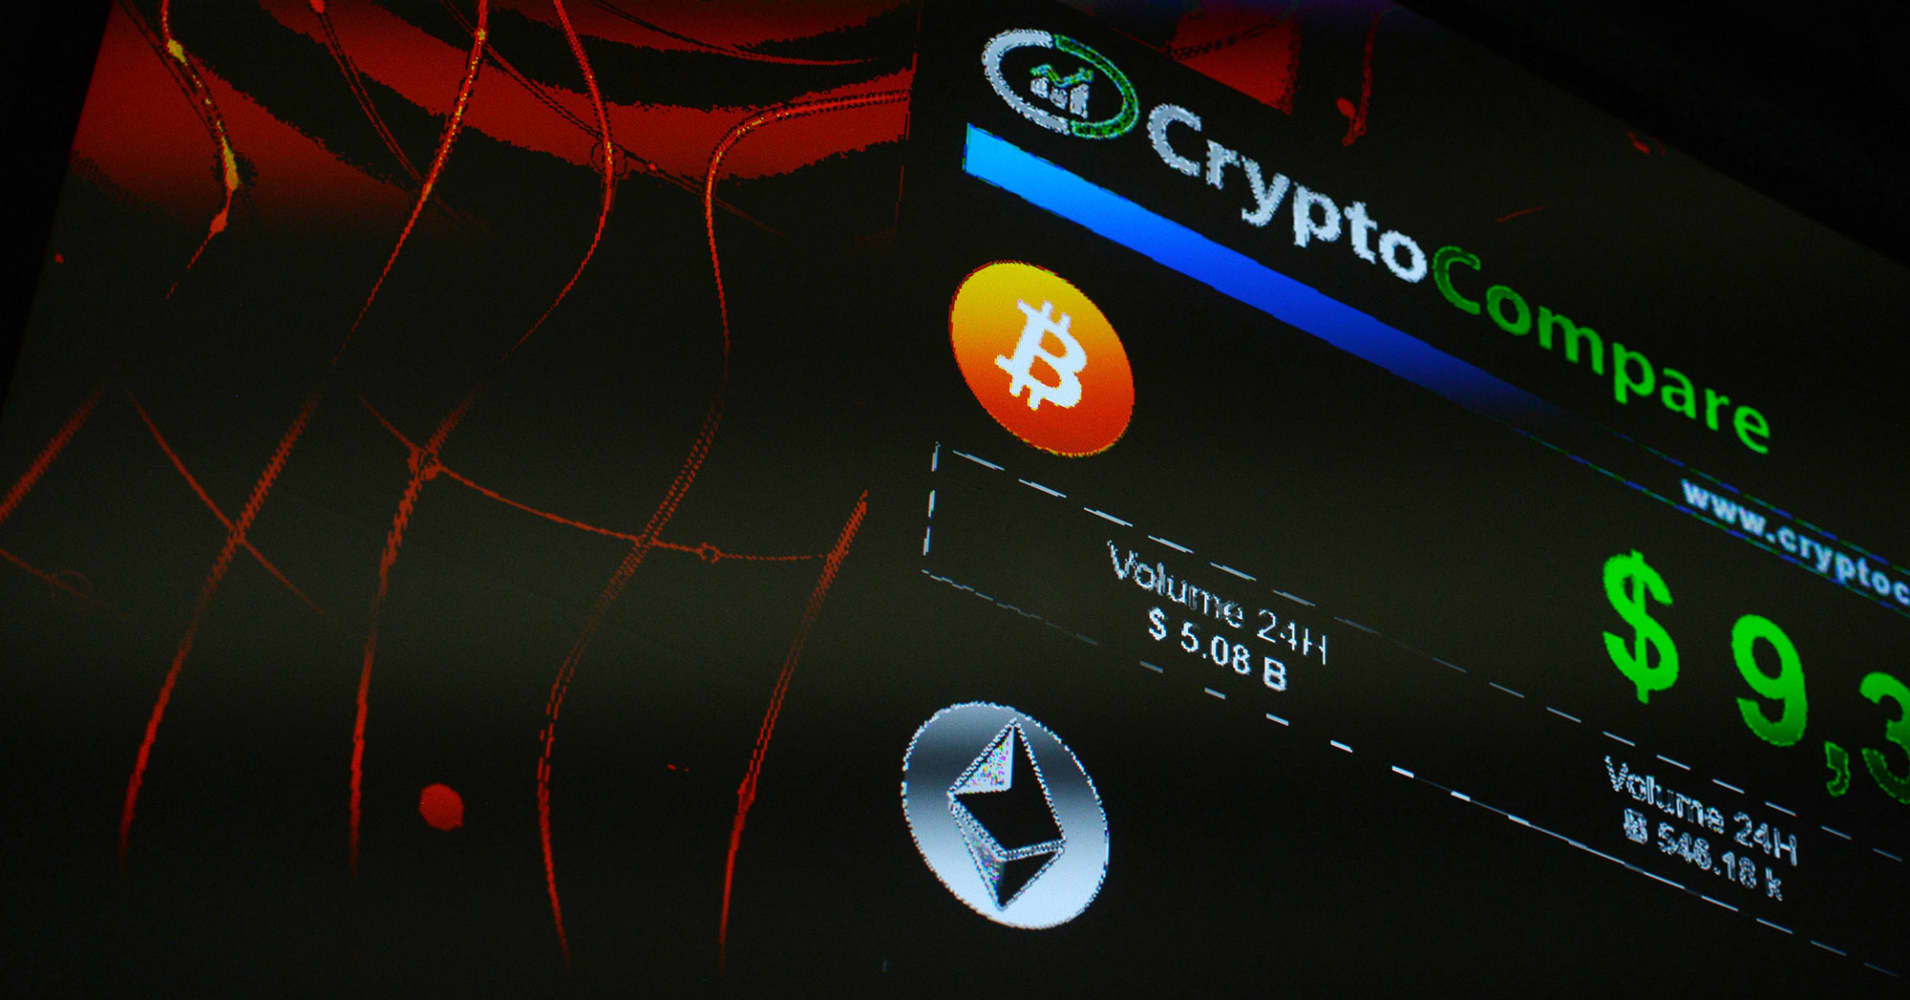 Bitcoin falls back below $9,000 after Google says it will ban cryptocurrency ads